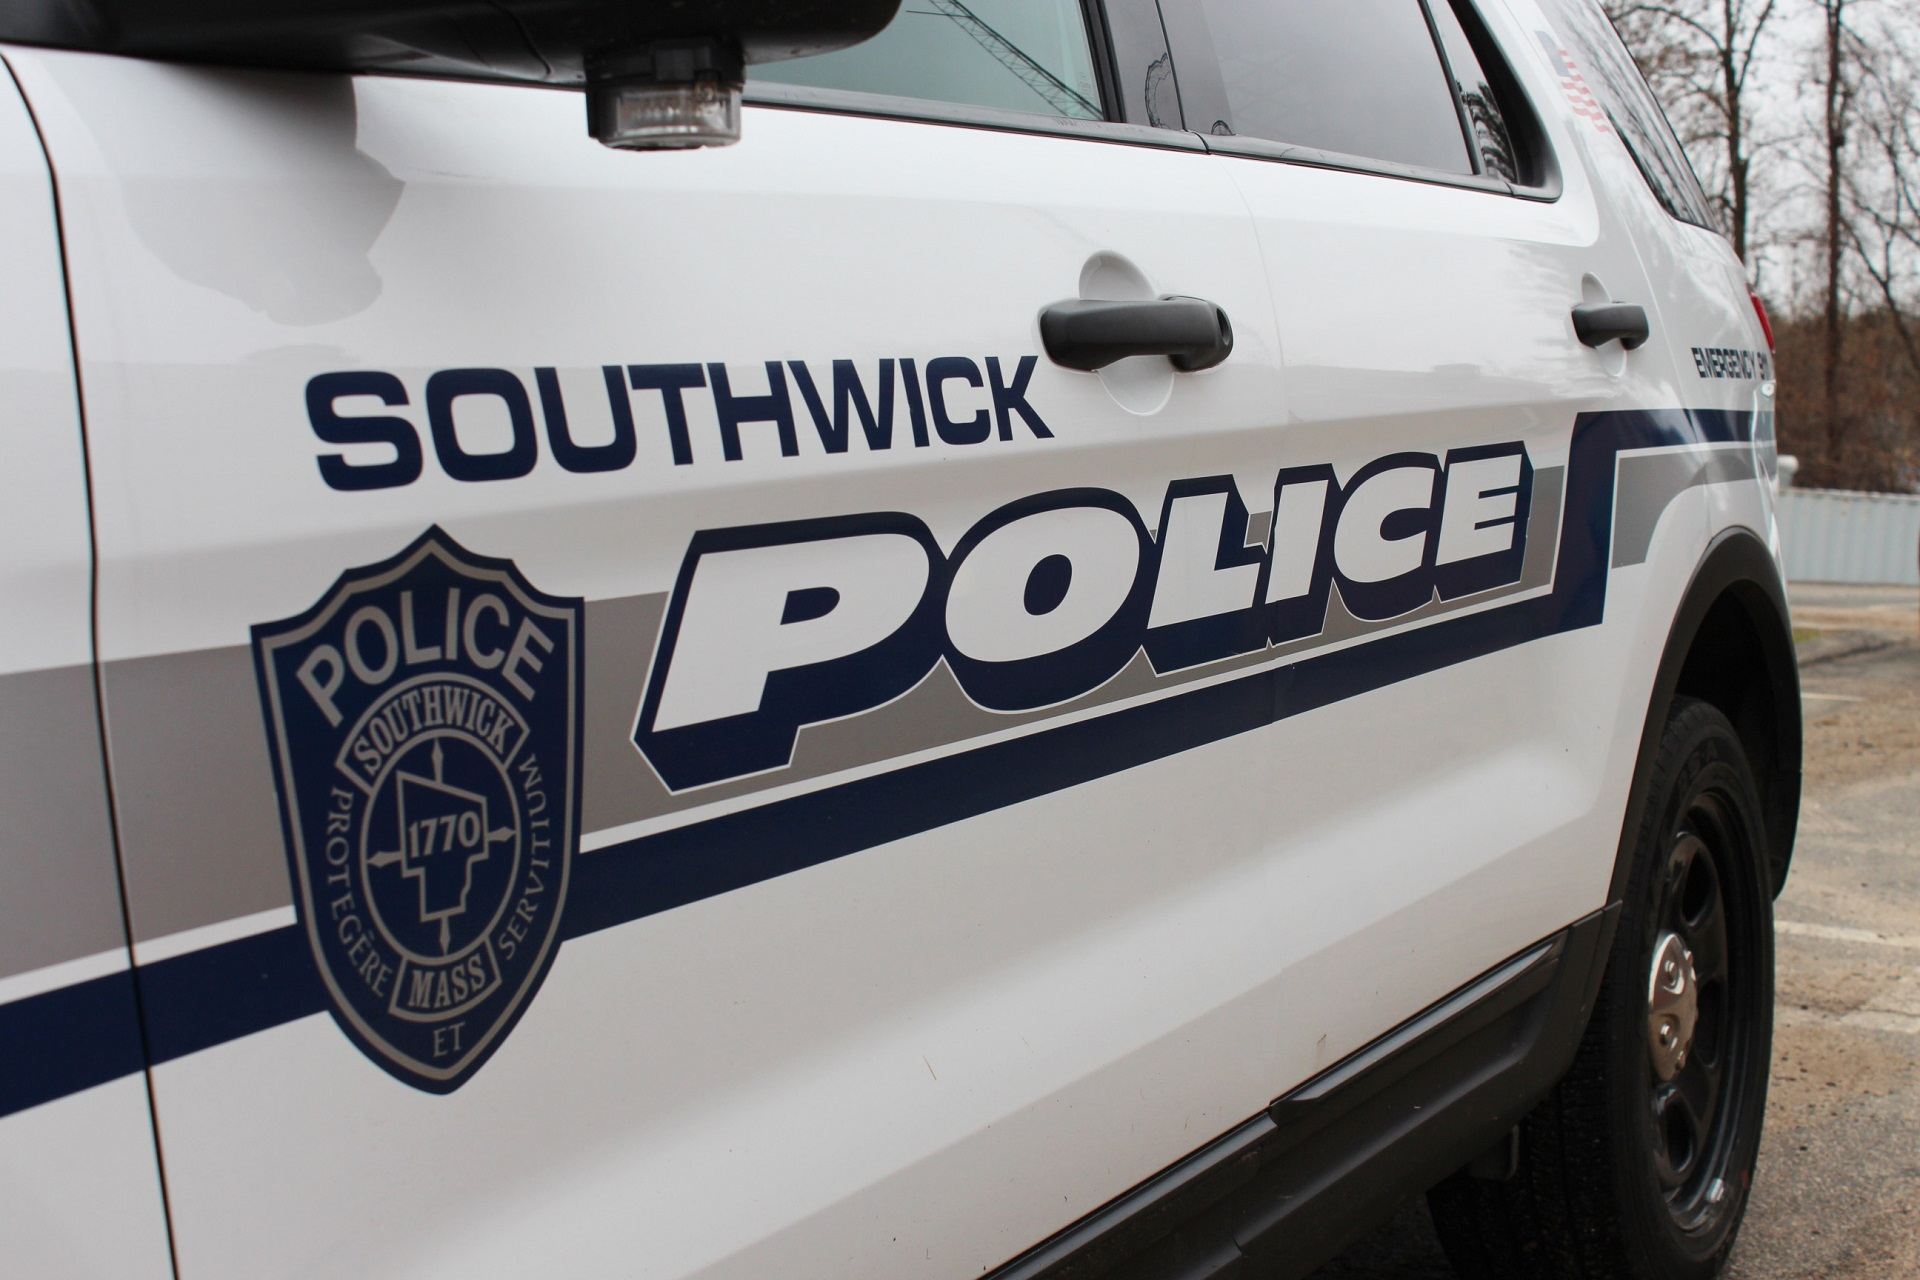 Southwick_Police_Vehicle4_1539679113209.jpg